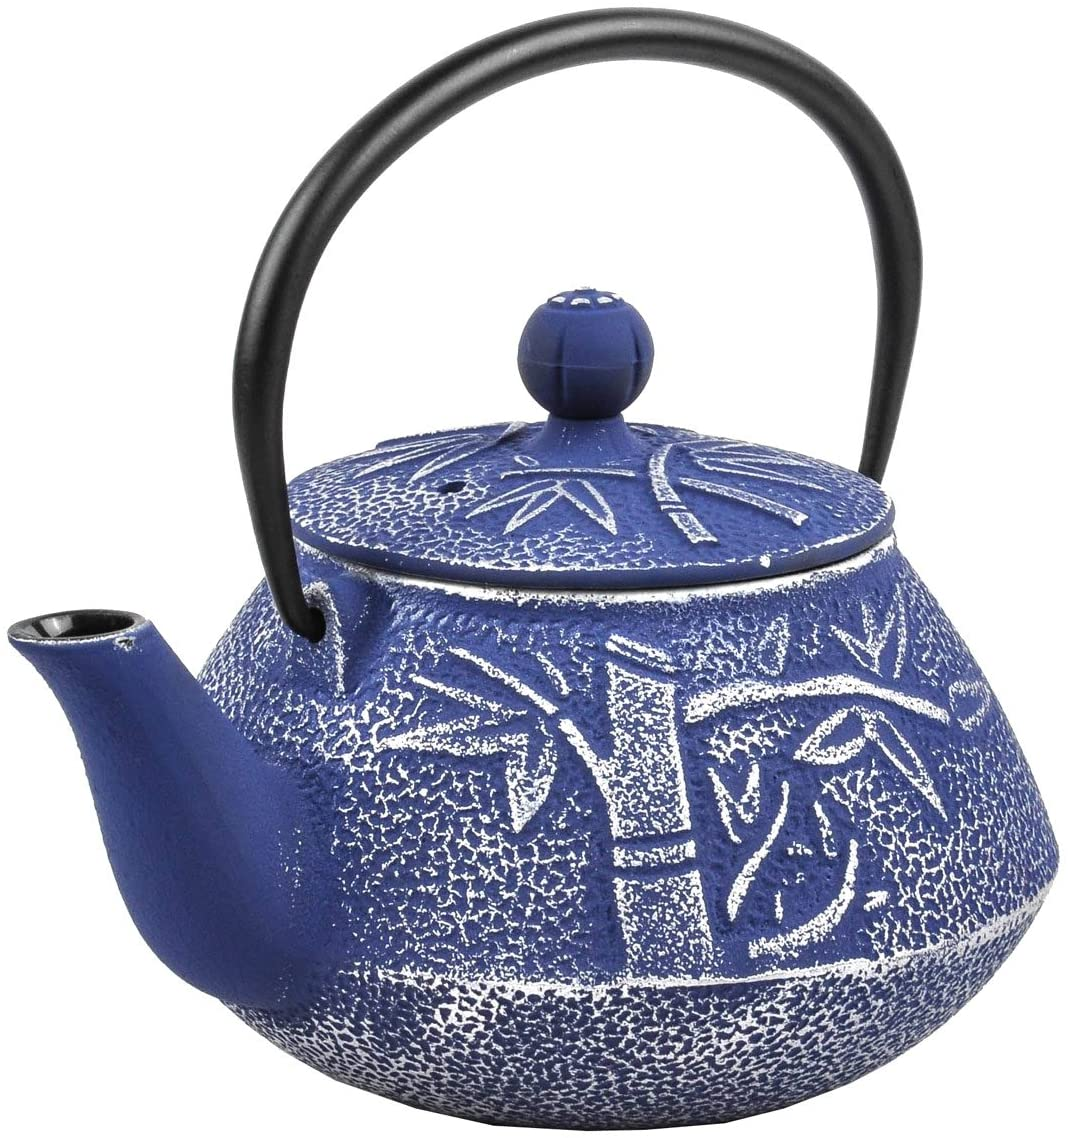 Spigo Yamanashi Cast Iron Enamel With Stainless Steel Infuser Teapot, Blue, 30 Ounces